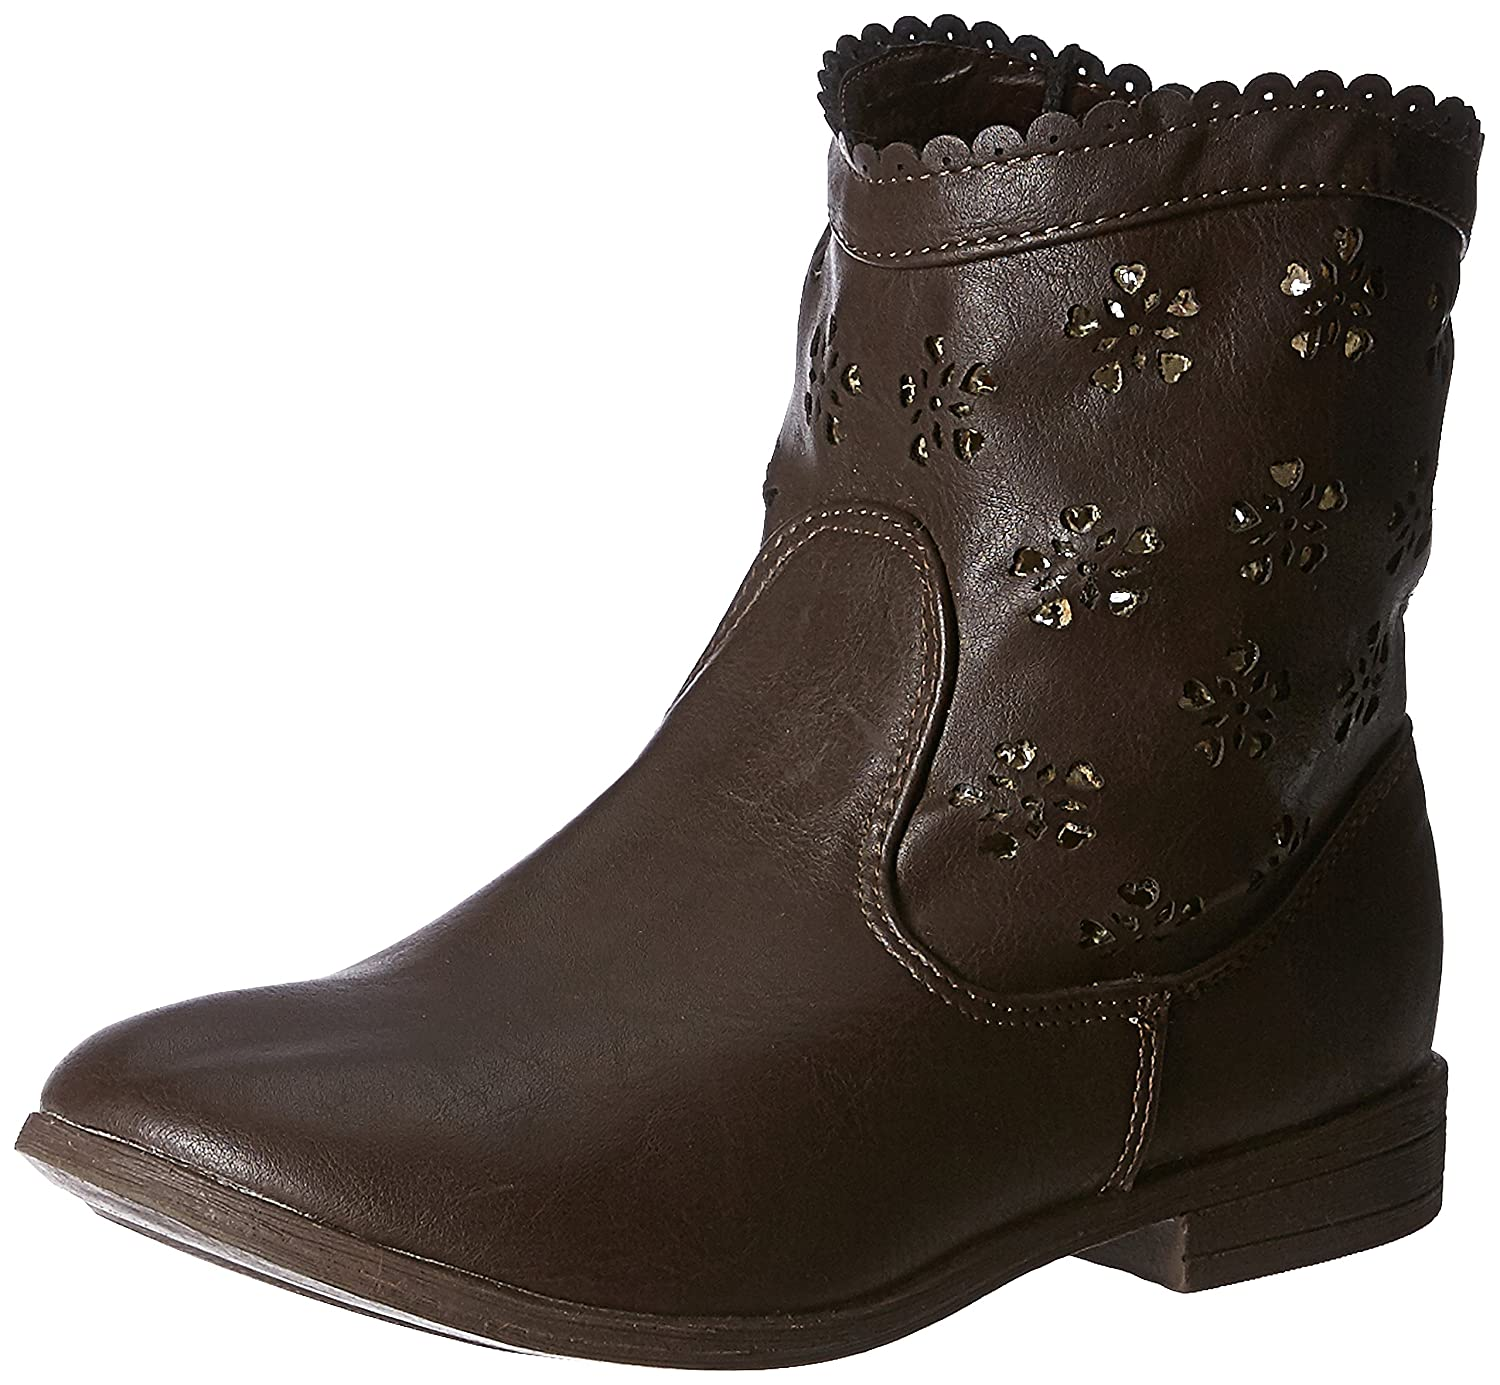 Buy Mothercare Girl's Brown Boots - 11